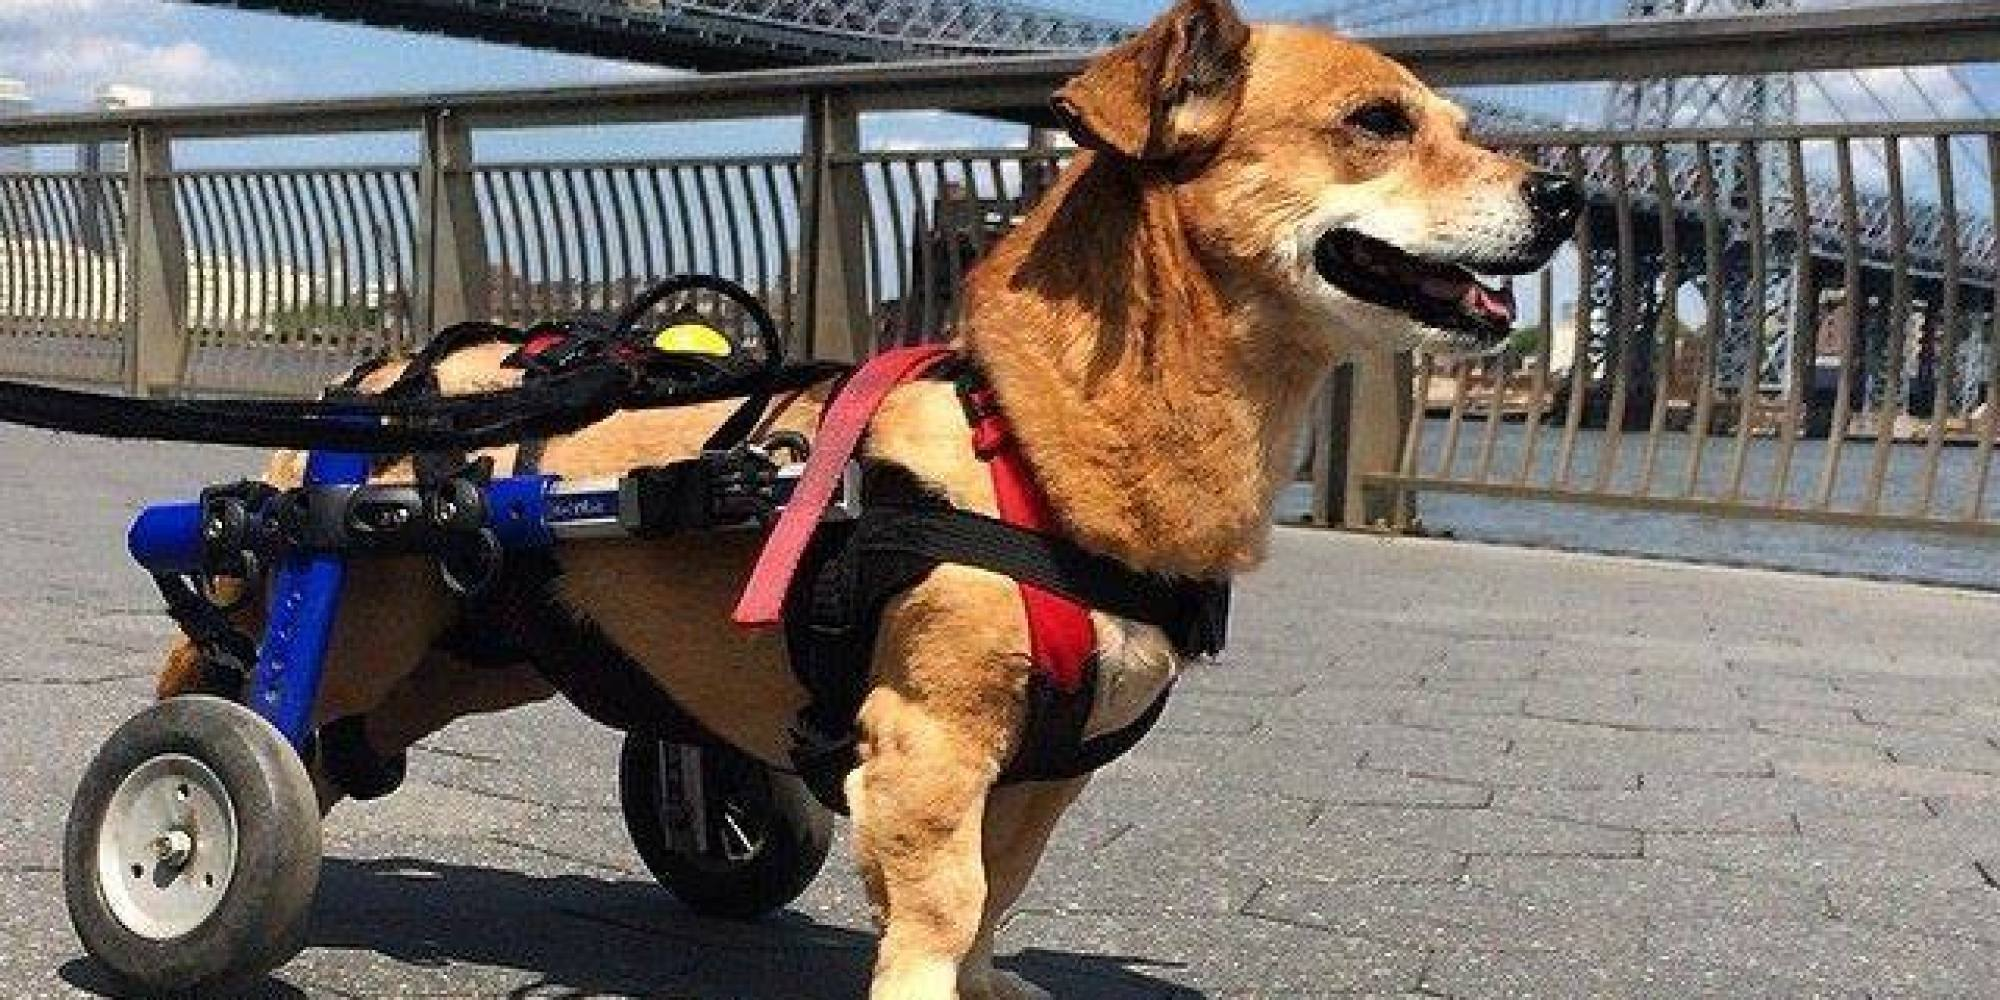 Oscar The Dog Is The Picture Perseverance After A Wheelchair